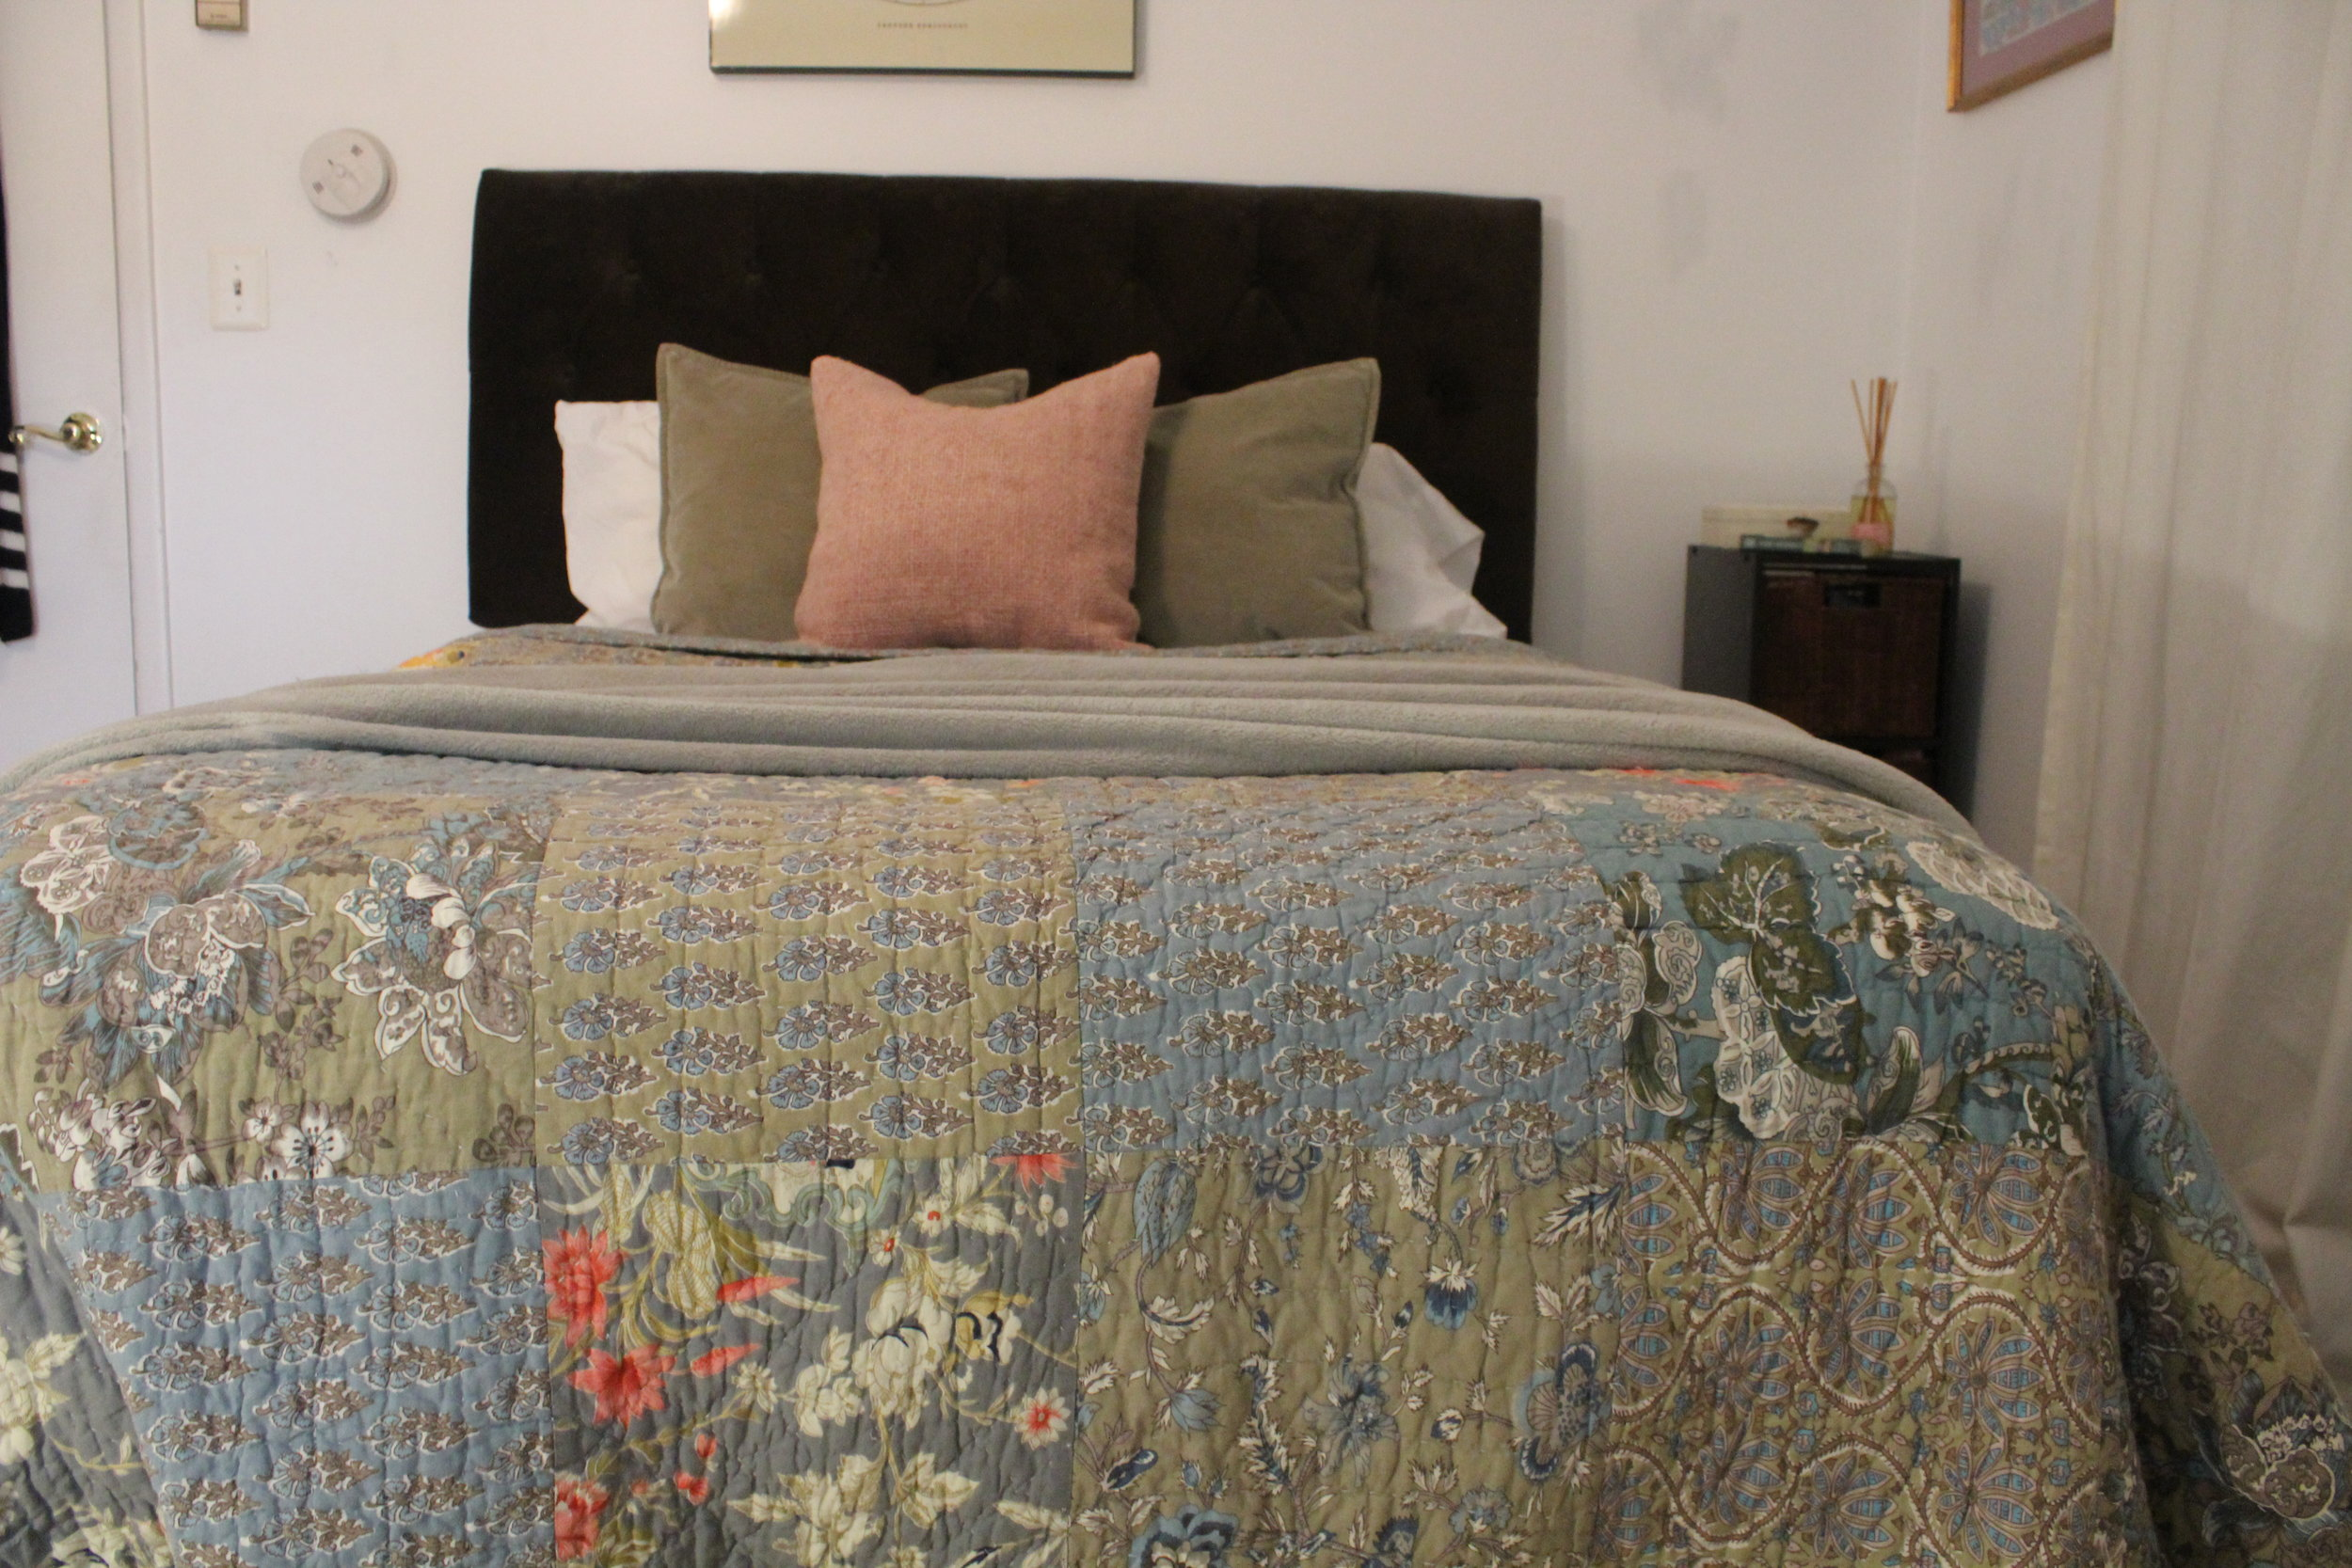 SUMMER - Time to lighten up the layers and keep it simpler with smaller throw pillows.